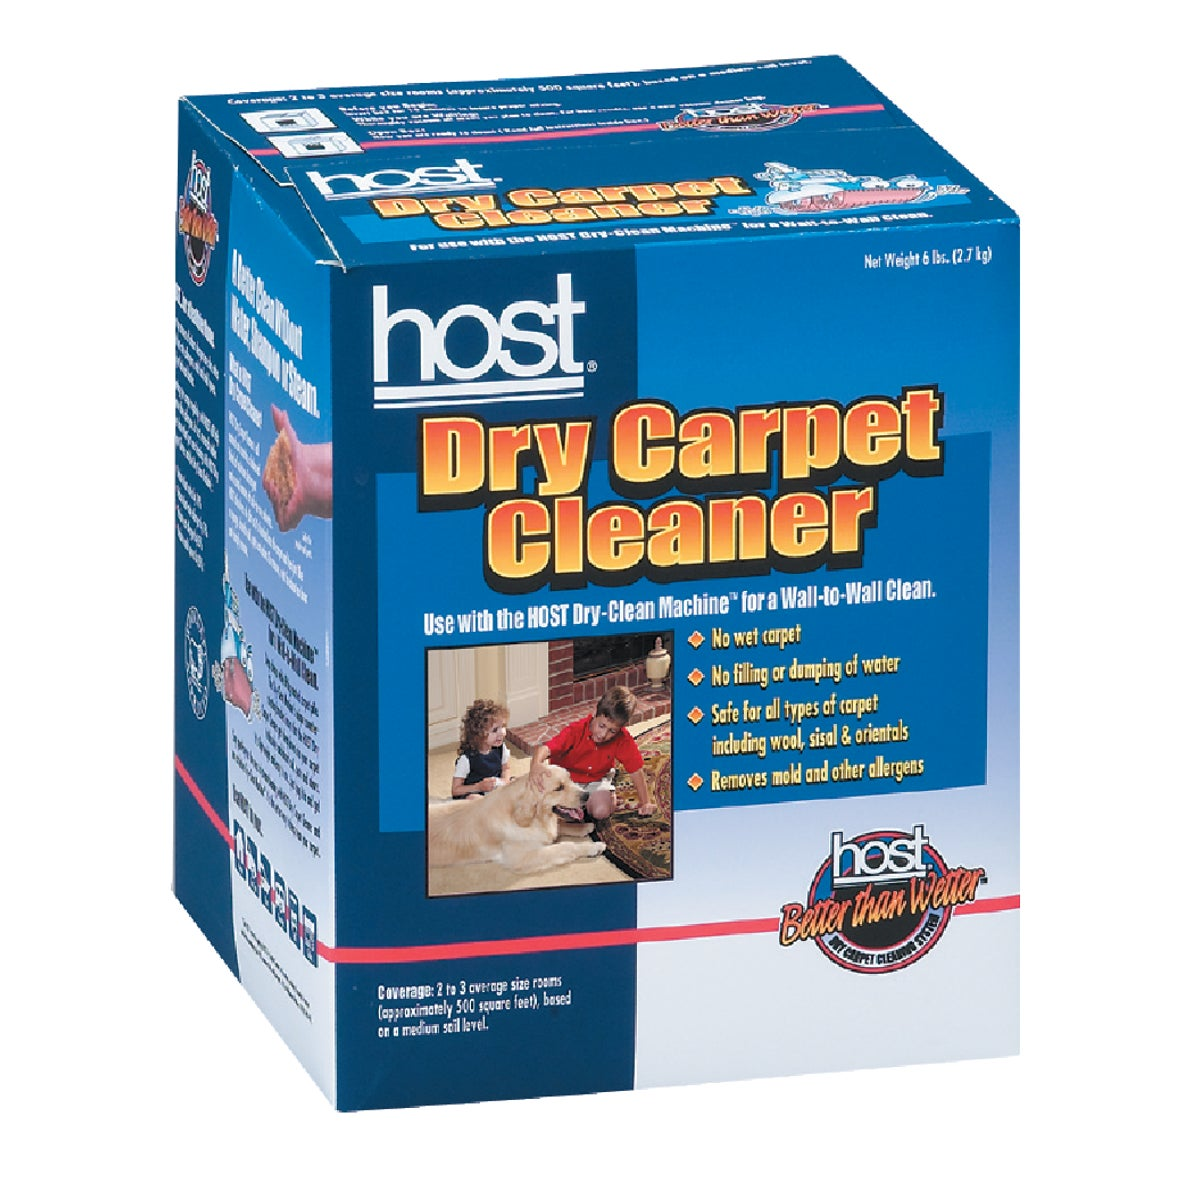 6LB DRY CARPET CLEANER